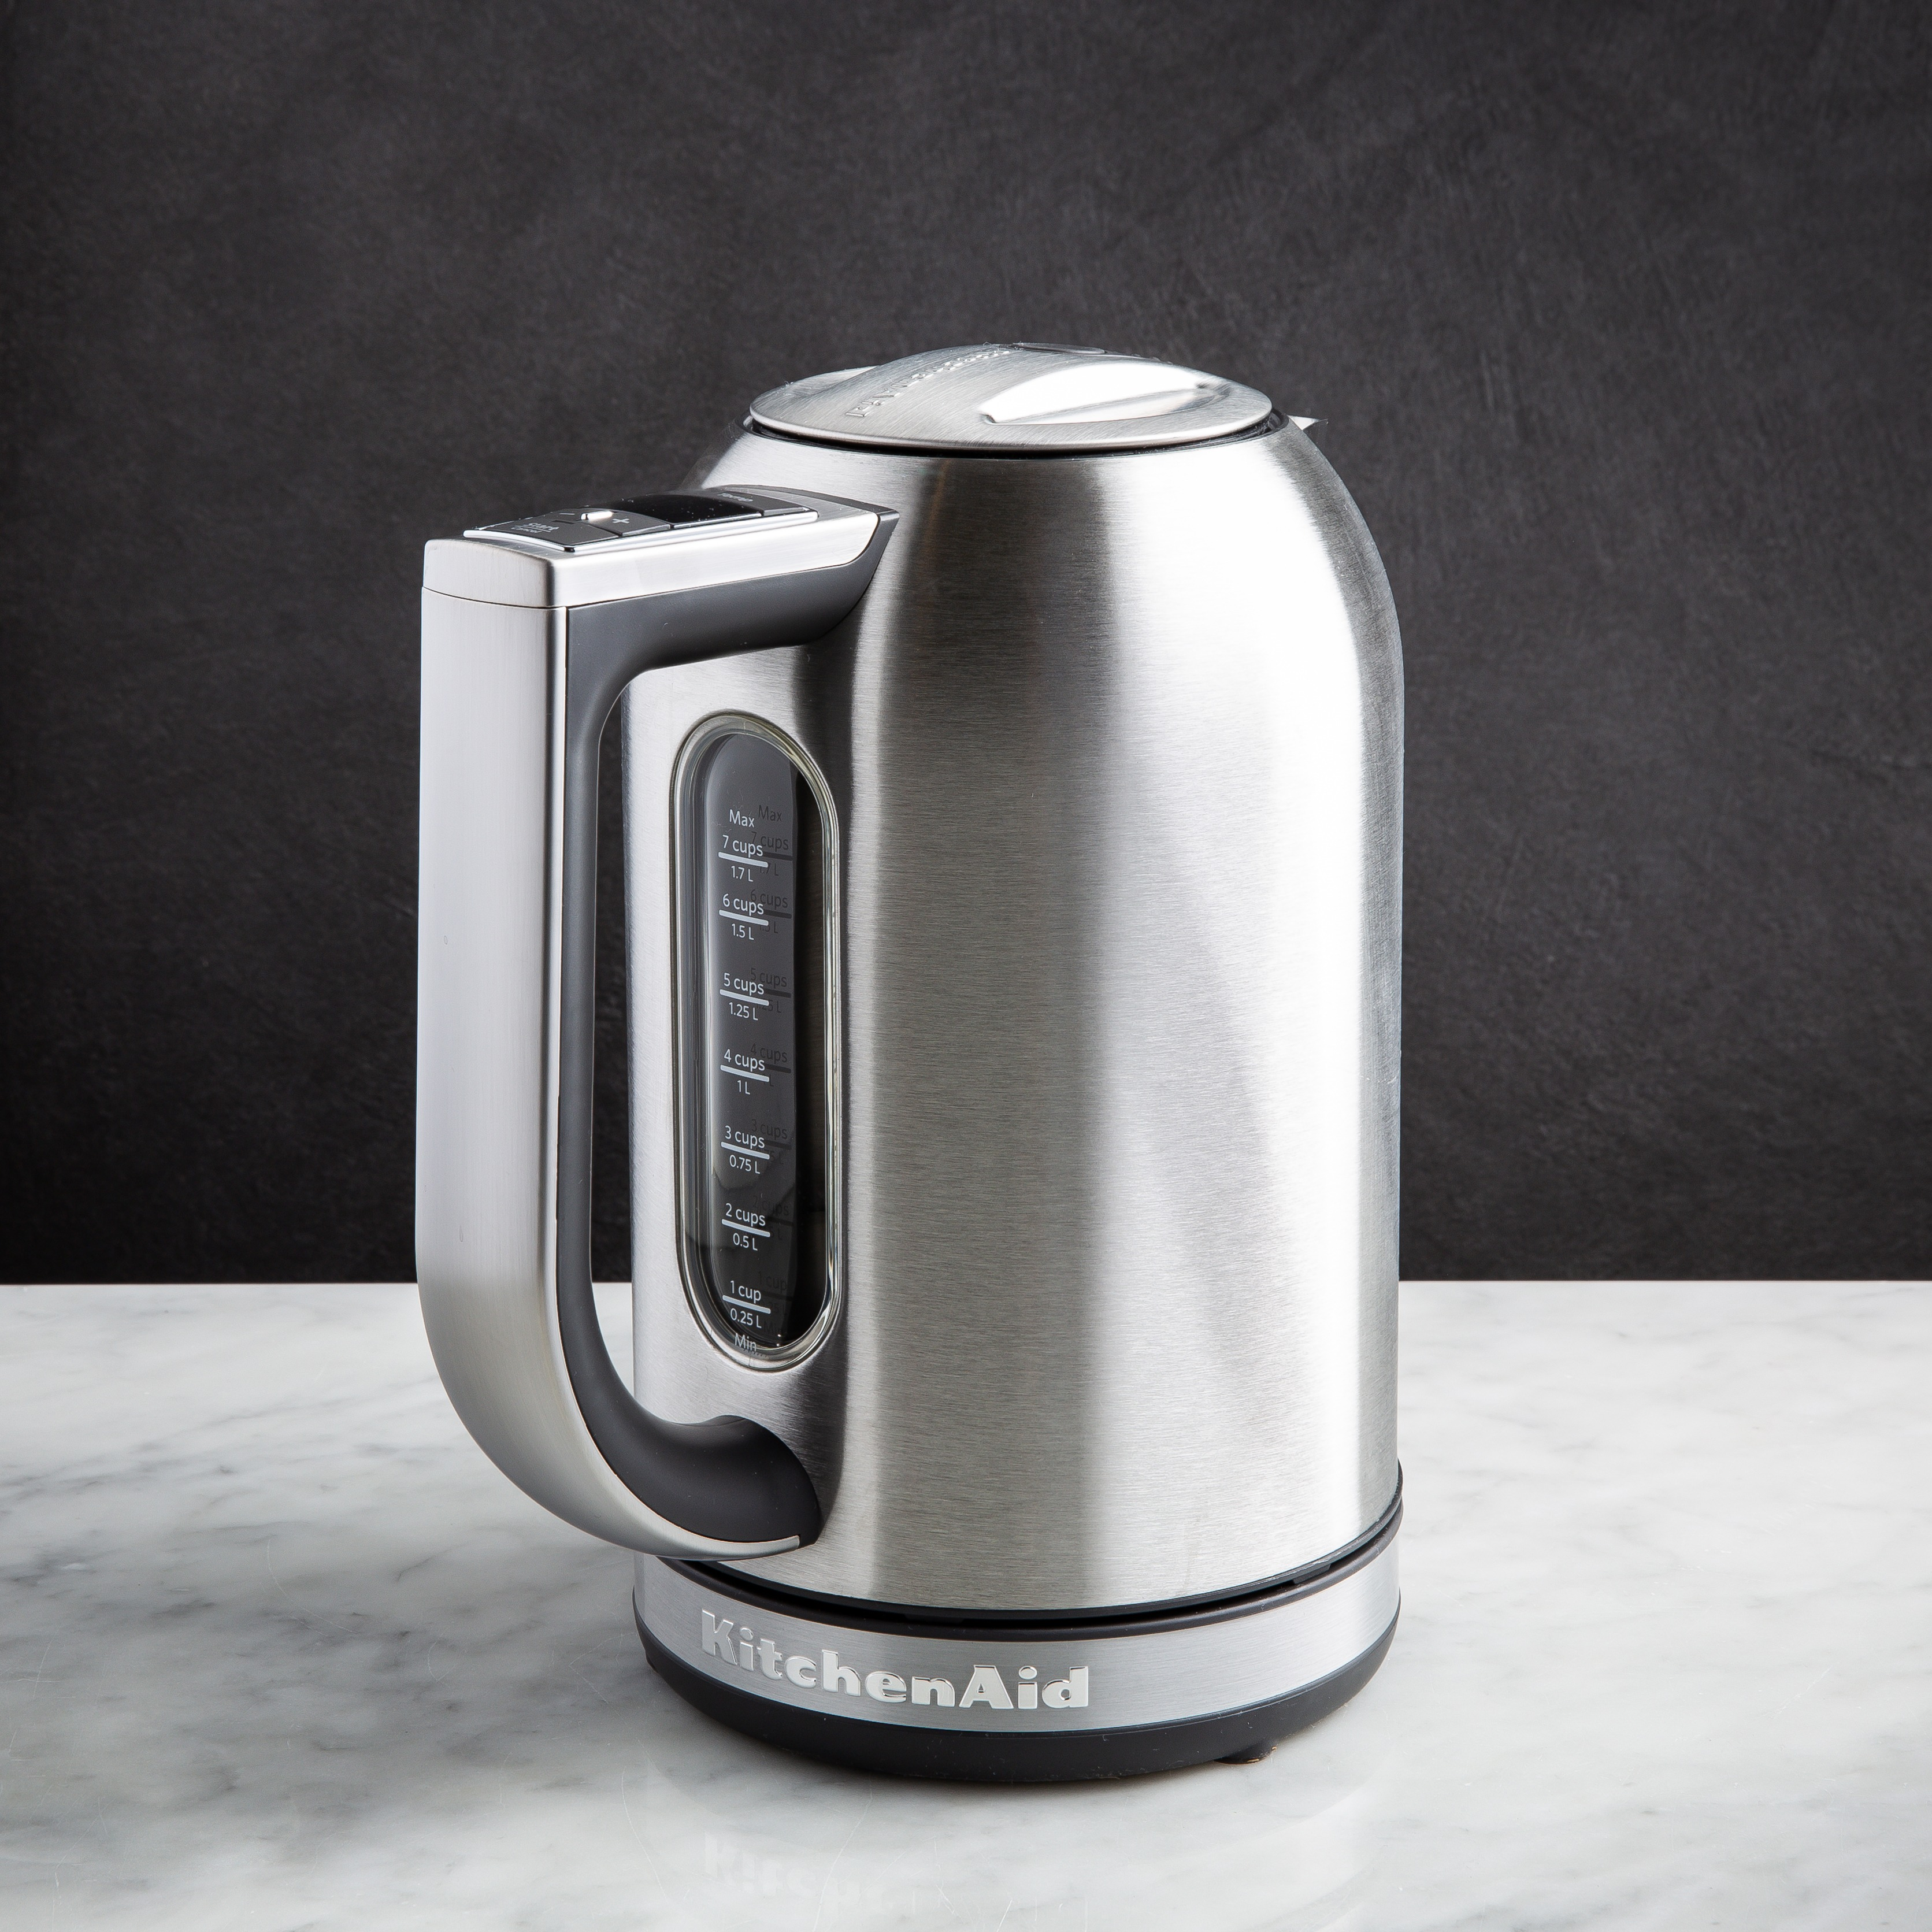 brushed stainless steel kitchenaid kettle